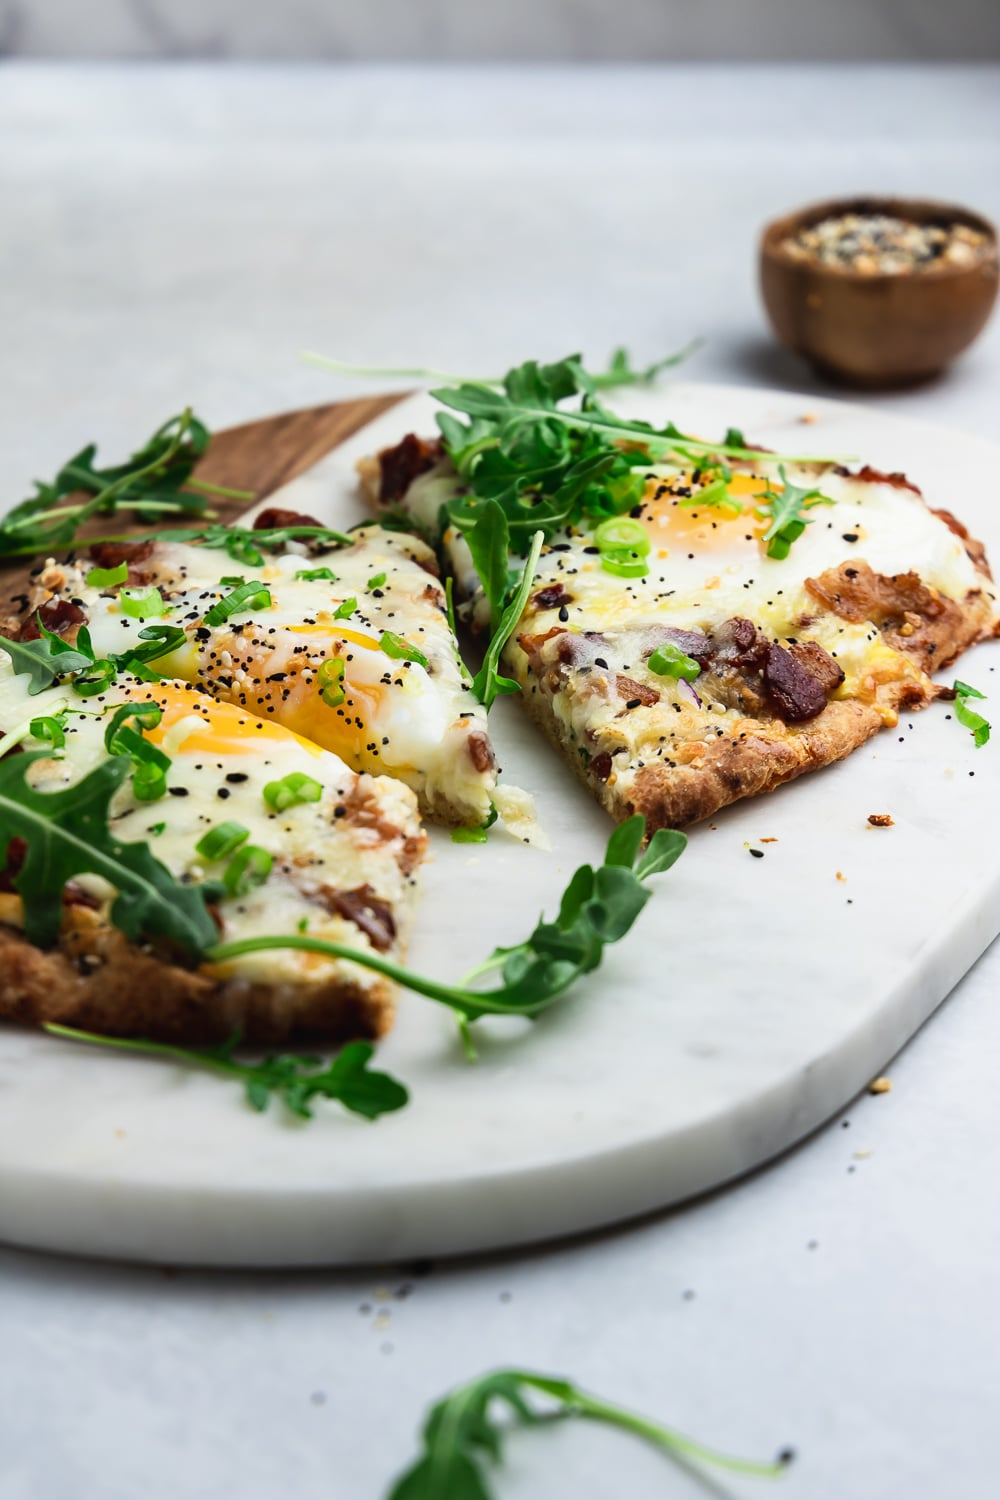 marble and wood board with sliced flatbread brunch pizza with runny egg, arugula, and small wood bowl with spices in the background